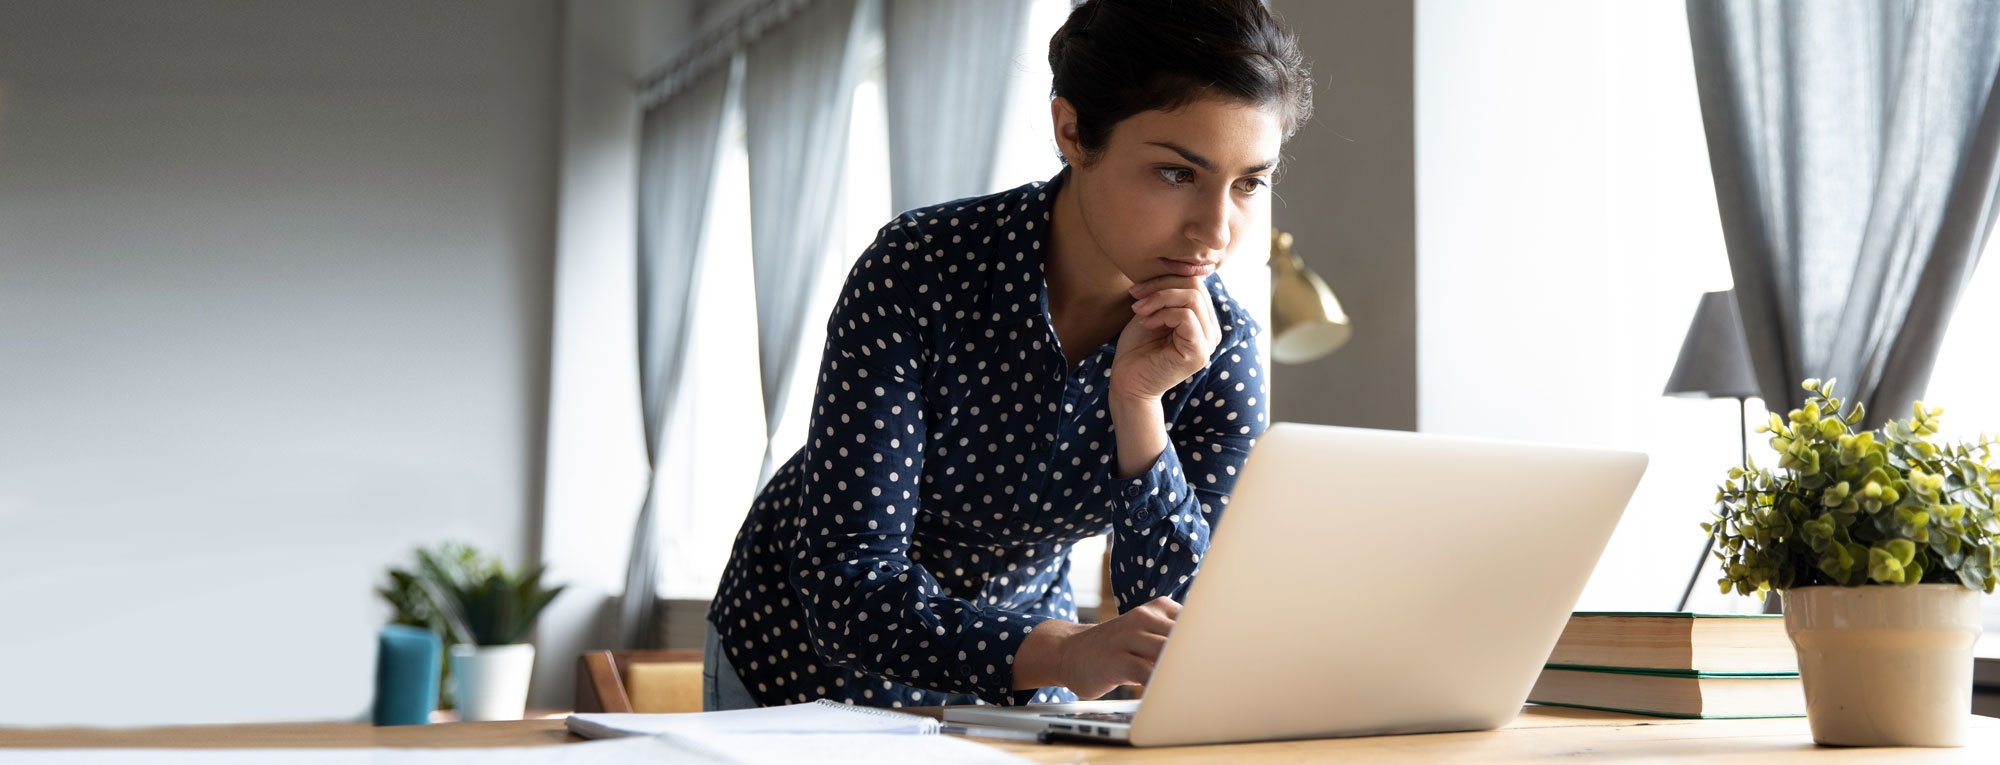 Thoughtful woman working on laptop